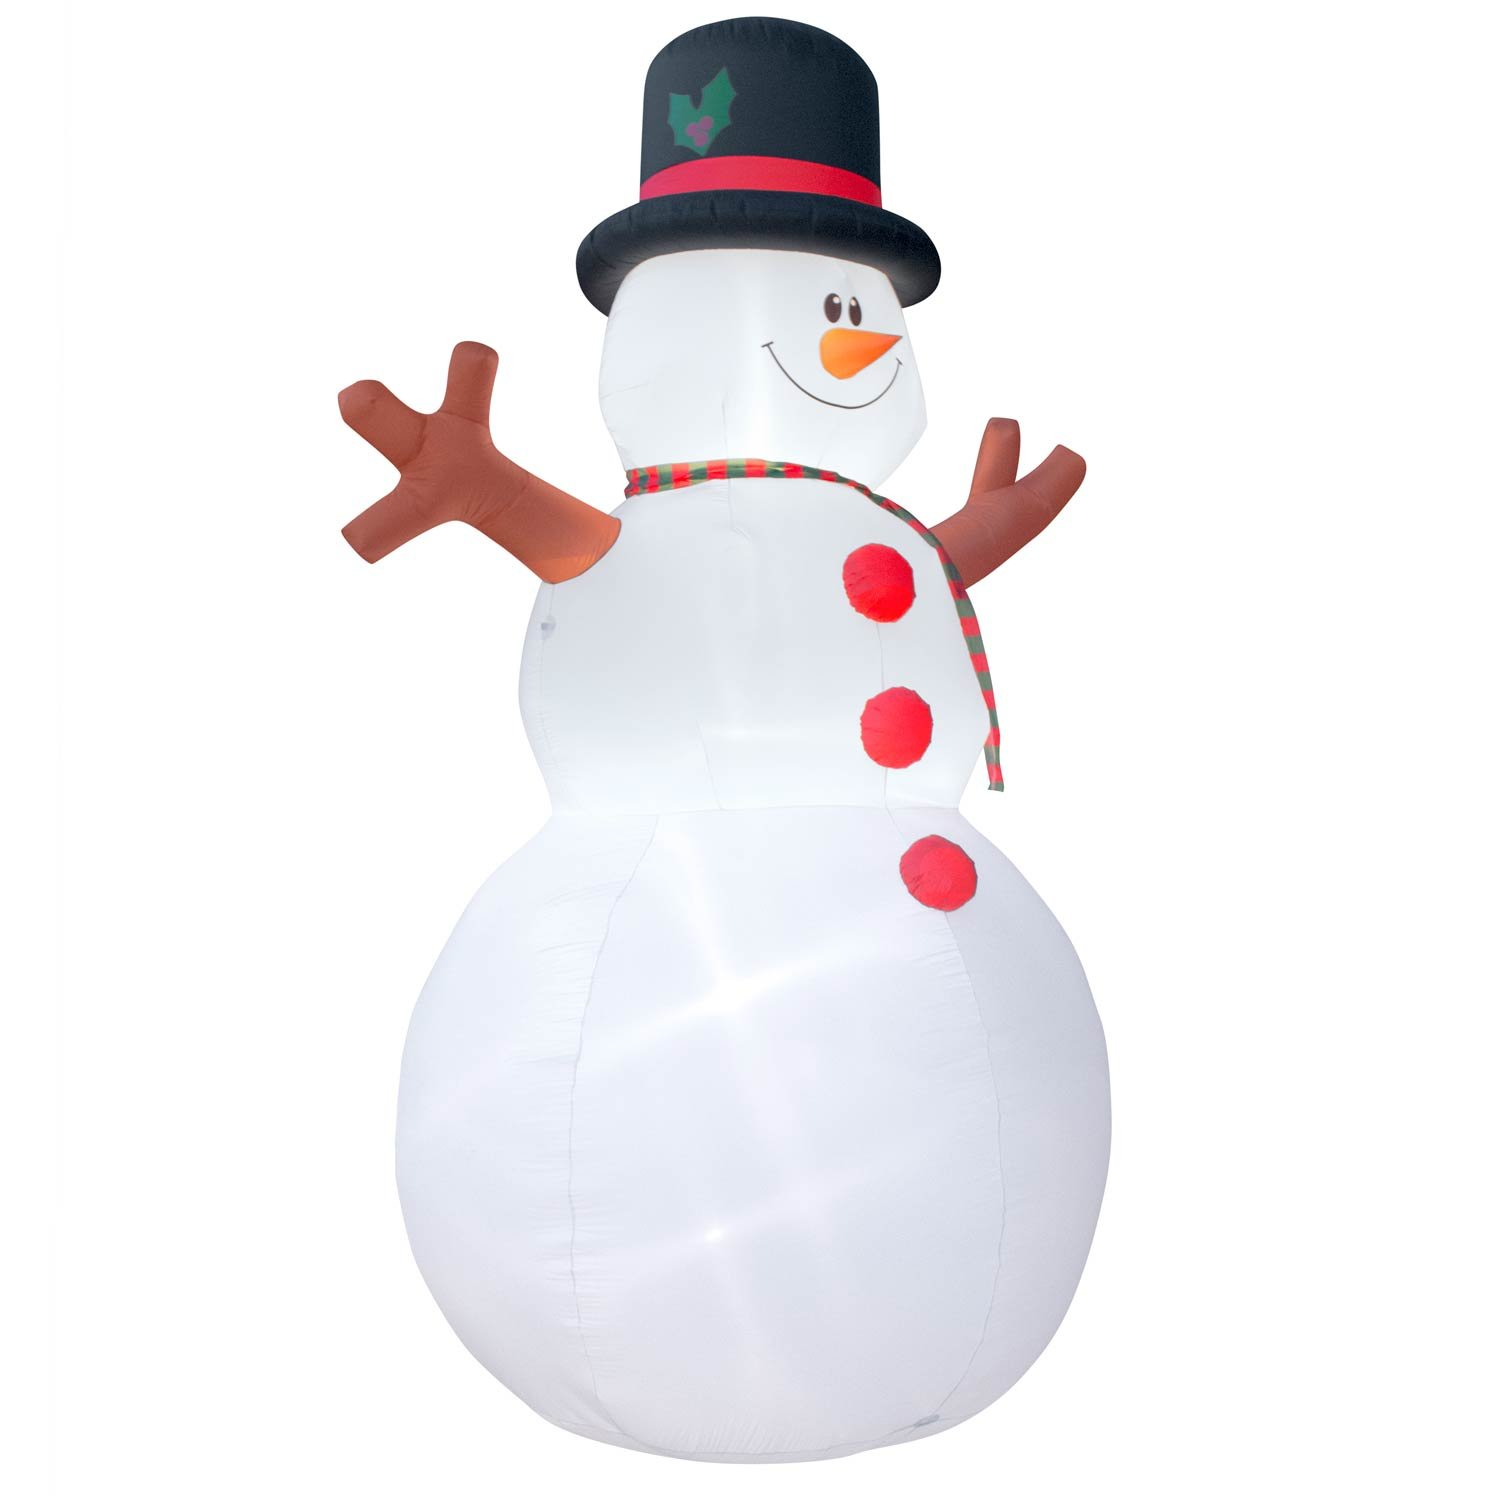 Holidayana Christmas Inflatable Giant 15 Ft. Snowman Inflatable Featuring Lighted Interior / Airblown Inflatable Christmas Decoration With Built In Fan And Anchor Ropes by Holidayana (Image #4)